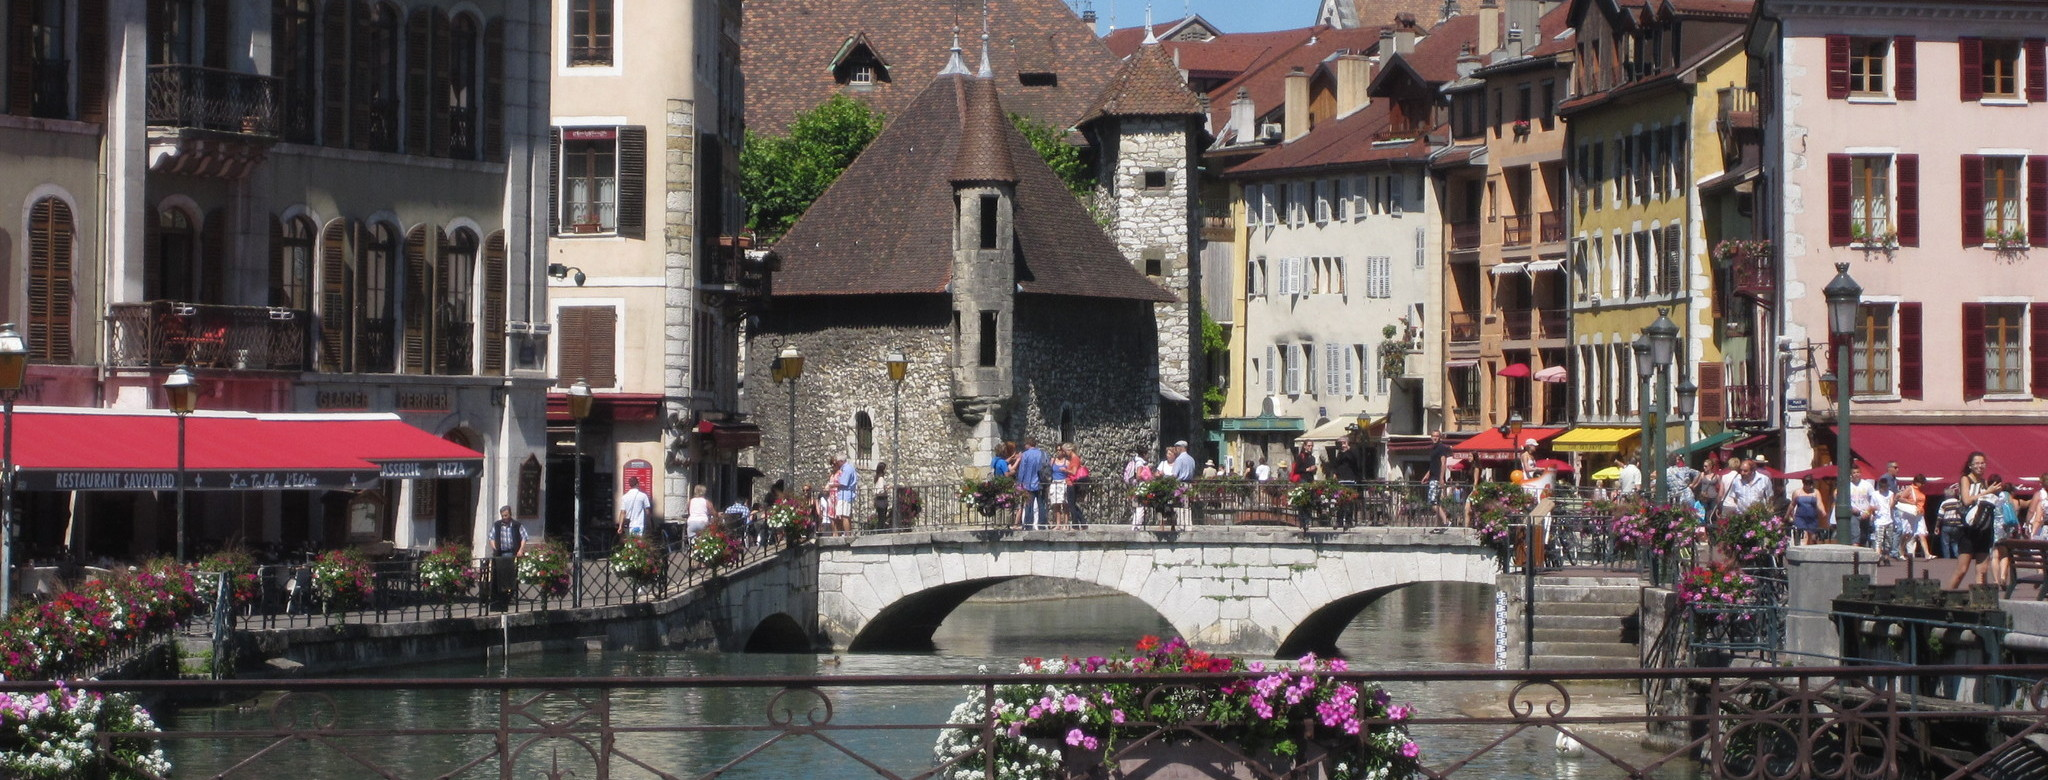 Canals in Annecy old town.